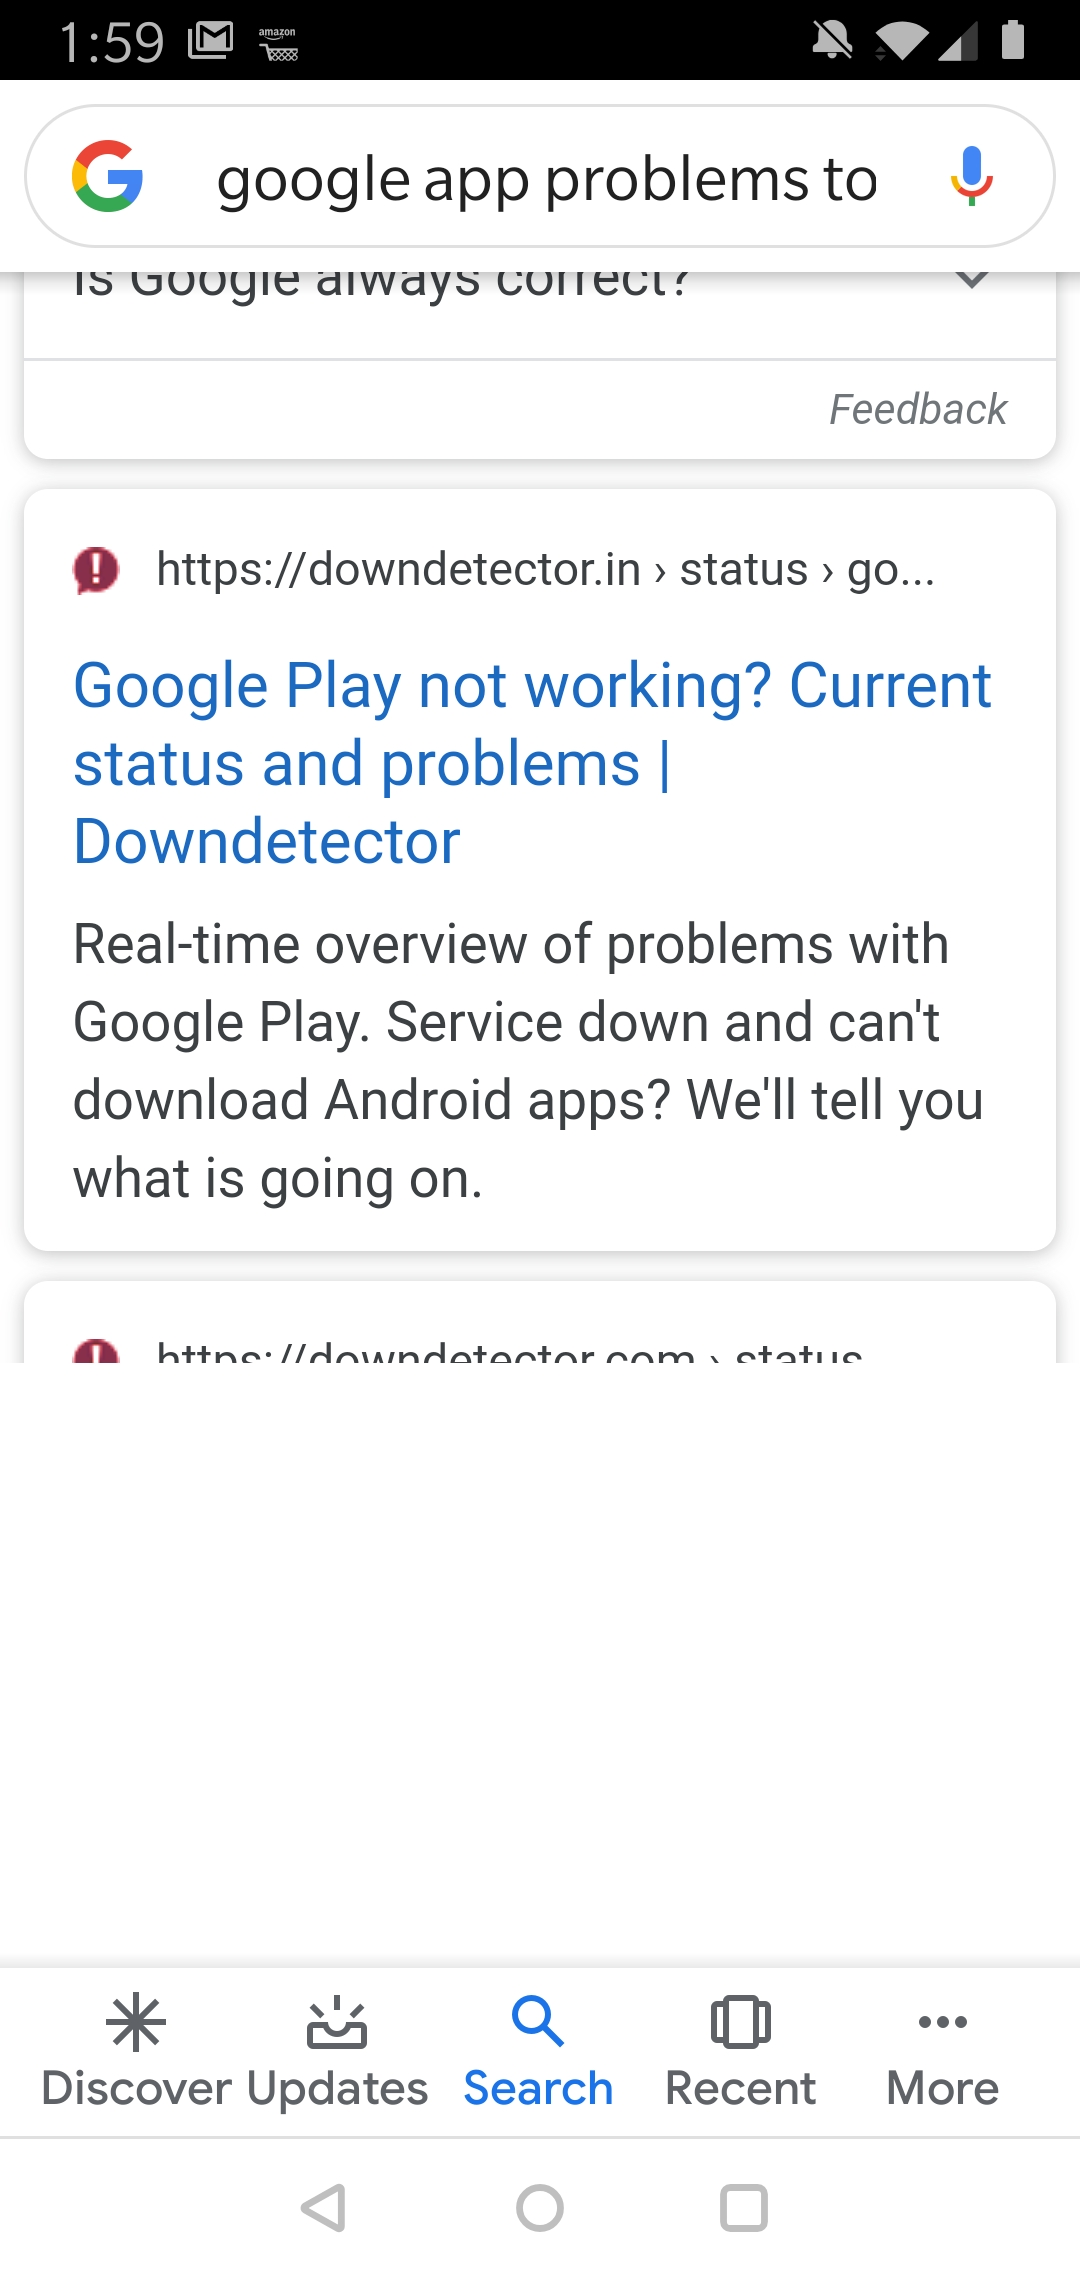 Google App Search Results Are Partially Displayed But On Scrolling Down Results Are Invisible Google Search Community